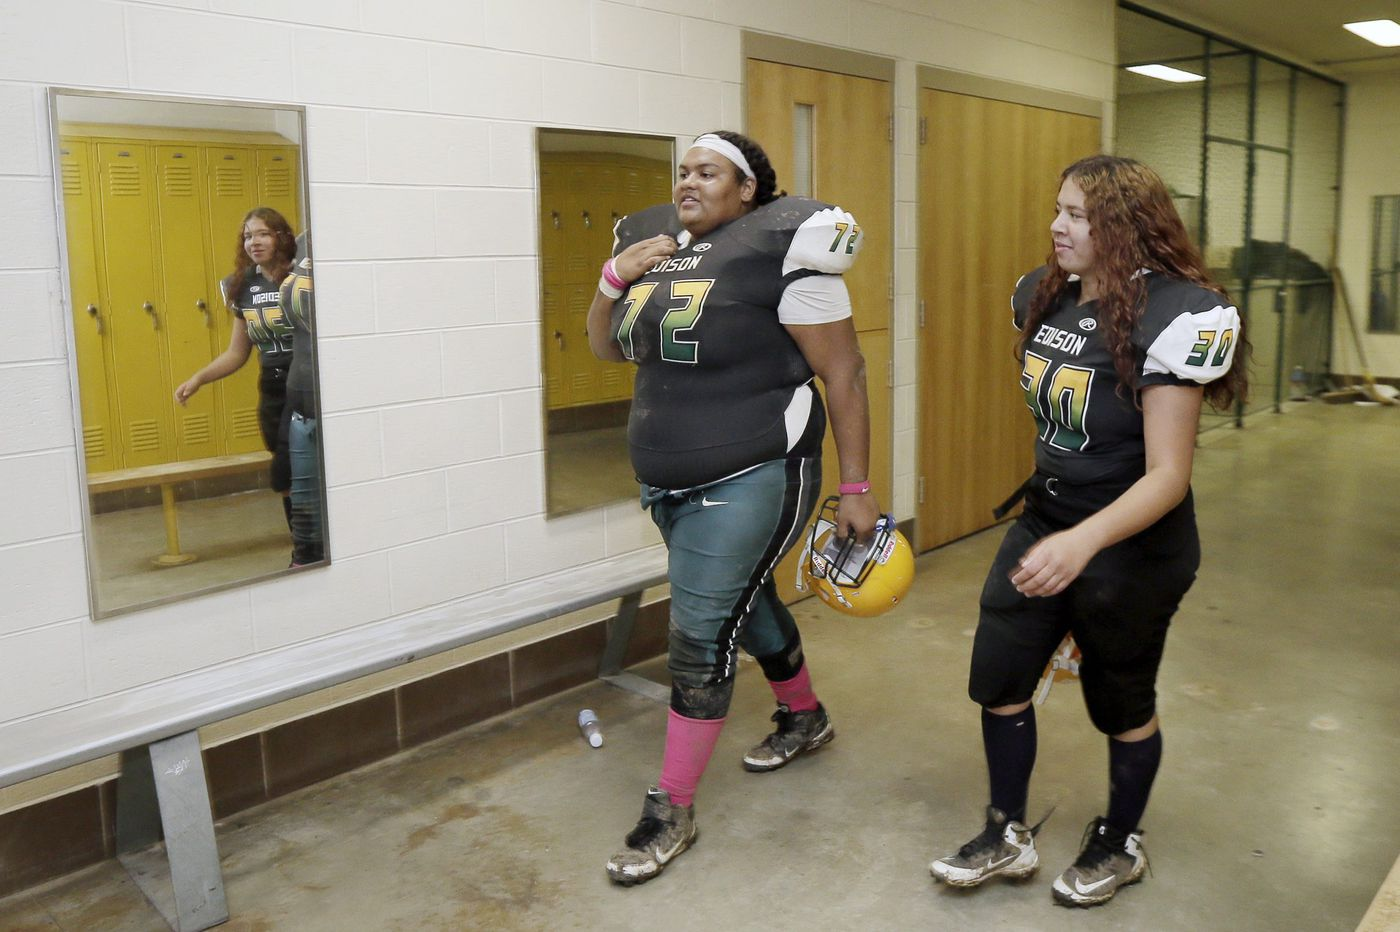 Two girls at Thomas Edison are tackling high school football — and winning